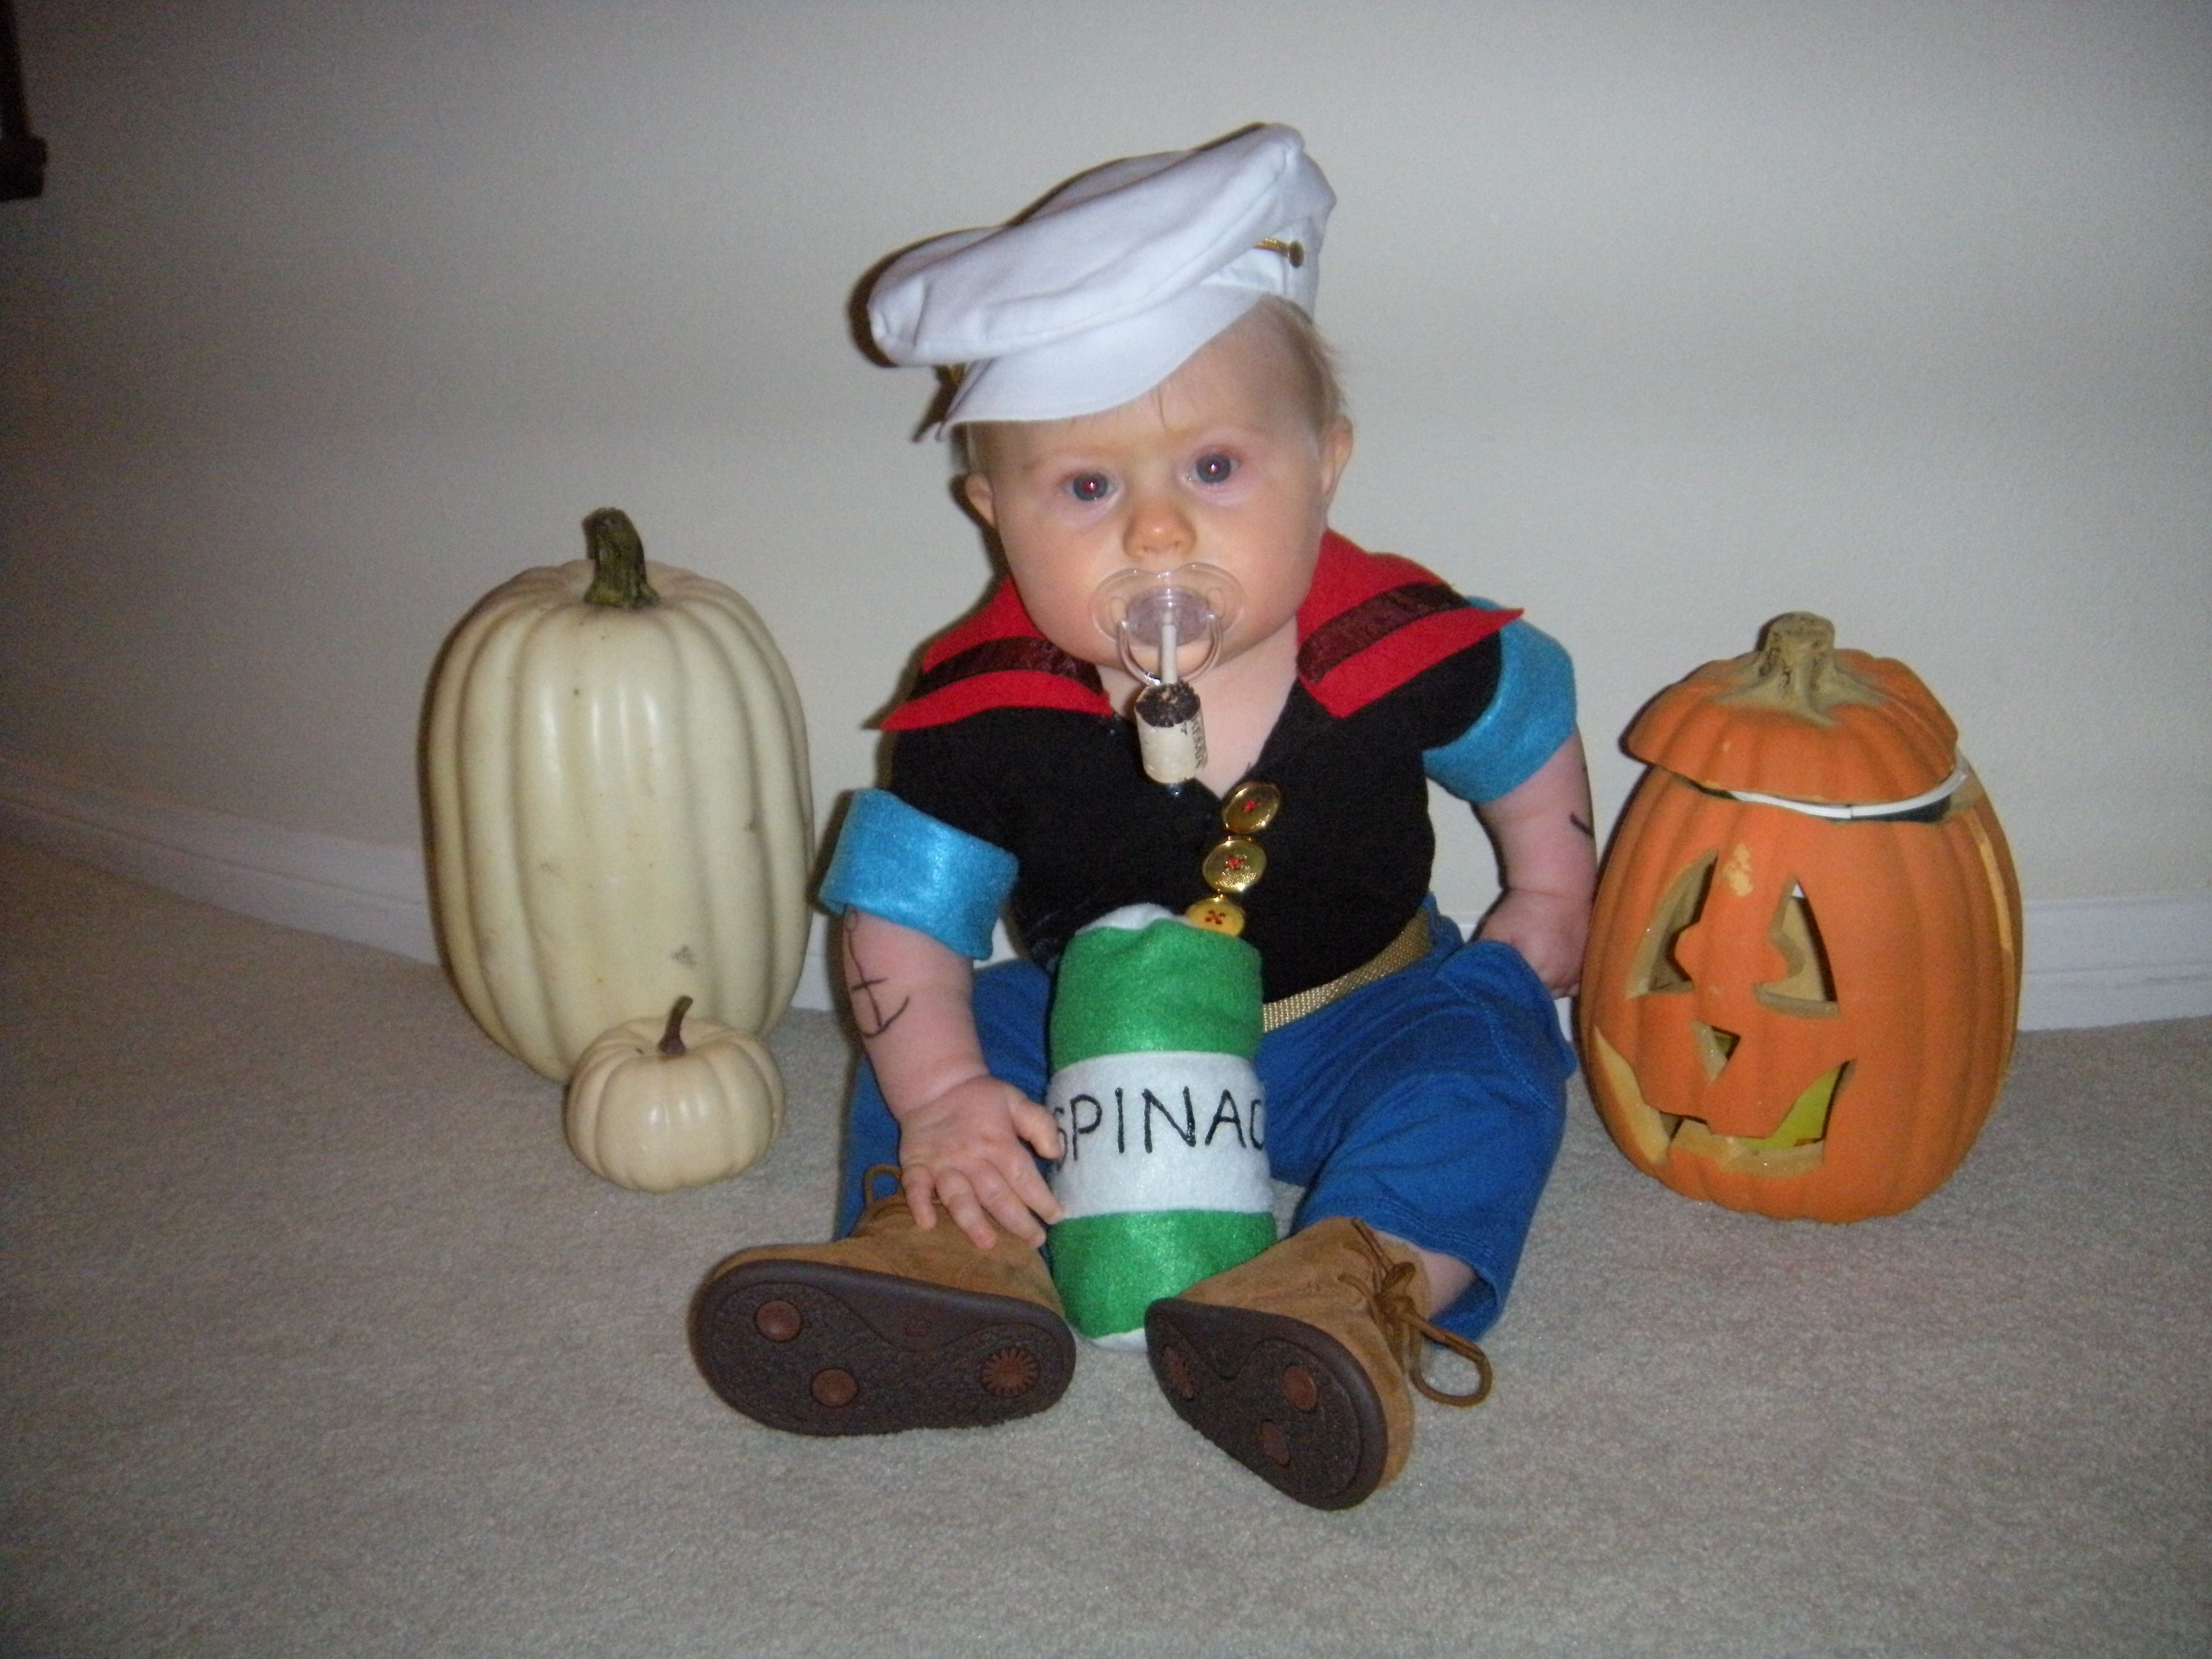 Baby Popeye costume complete with pipe and spinach | Clever ...